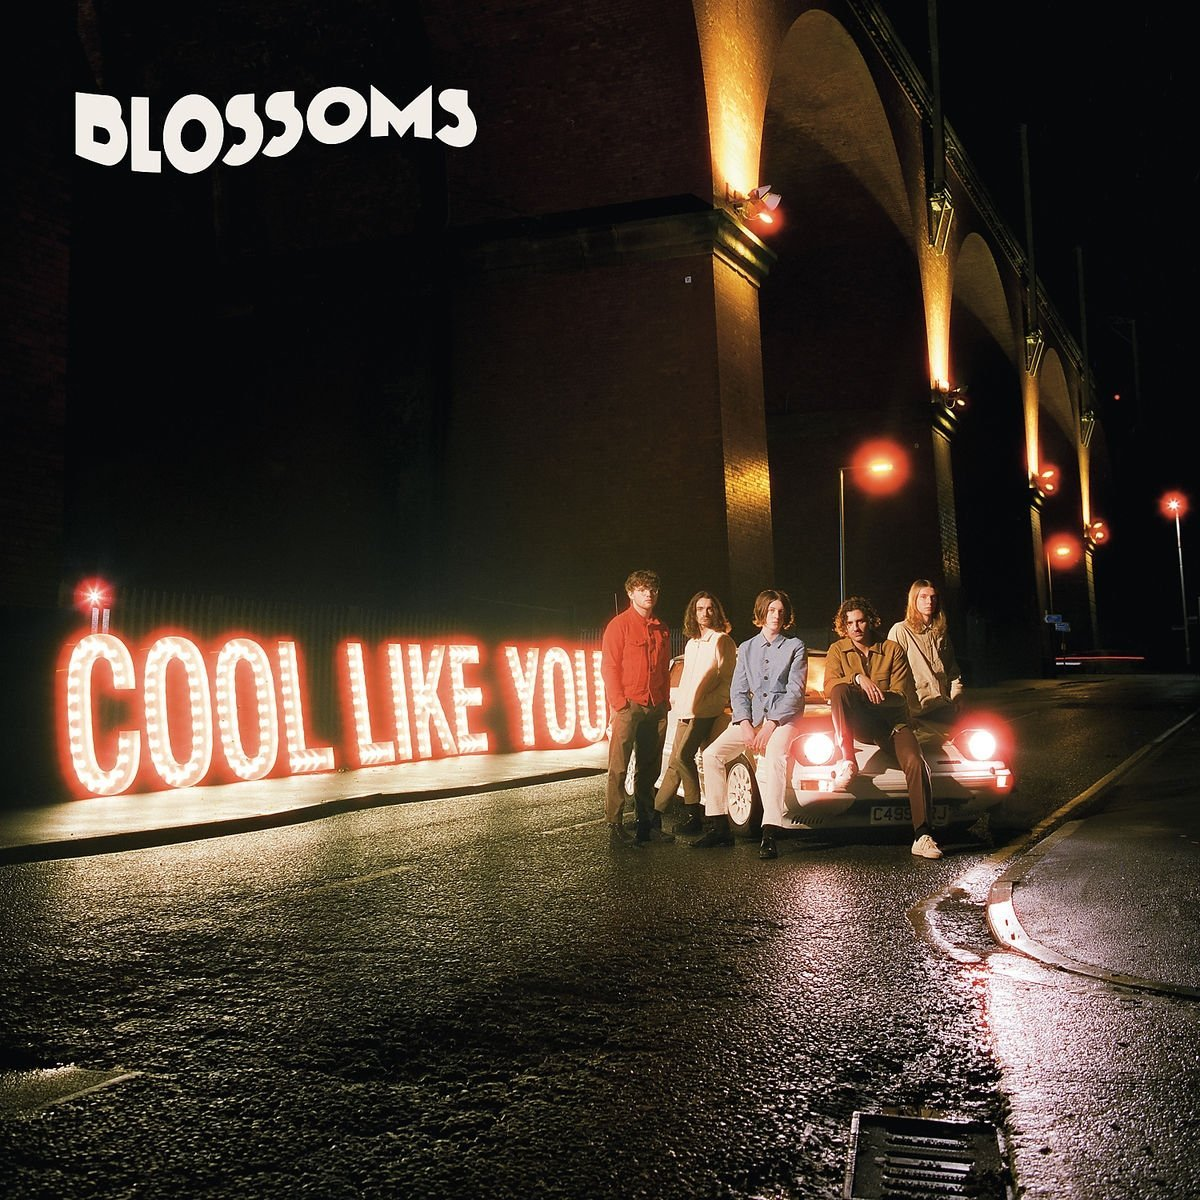 Blossoms  Cool Like You  Reviews  Clash Magazine